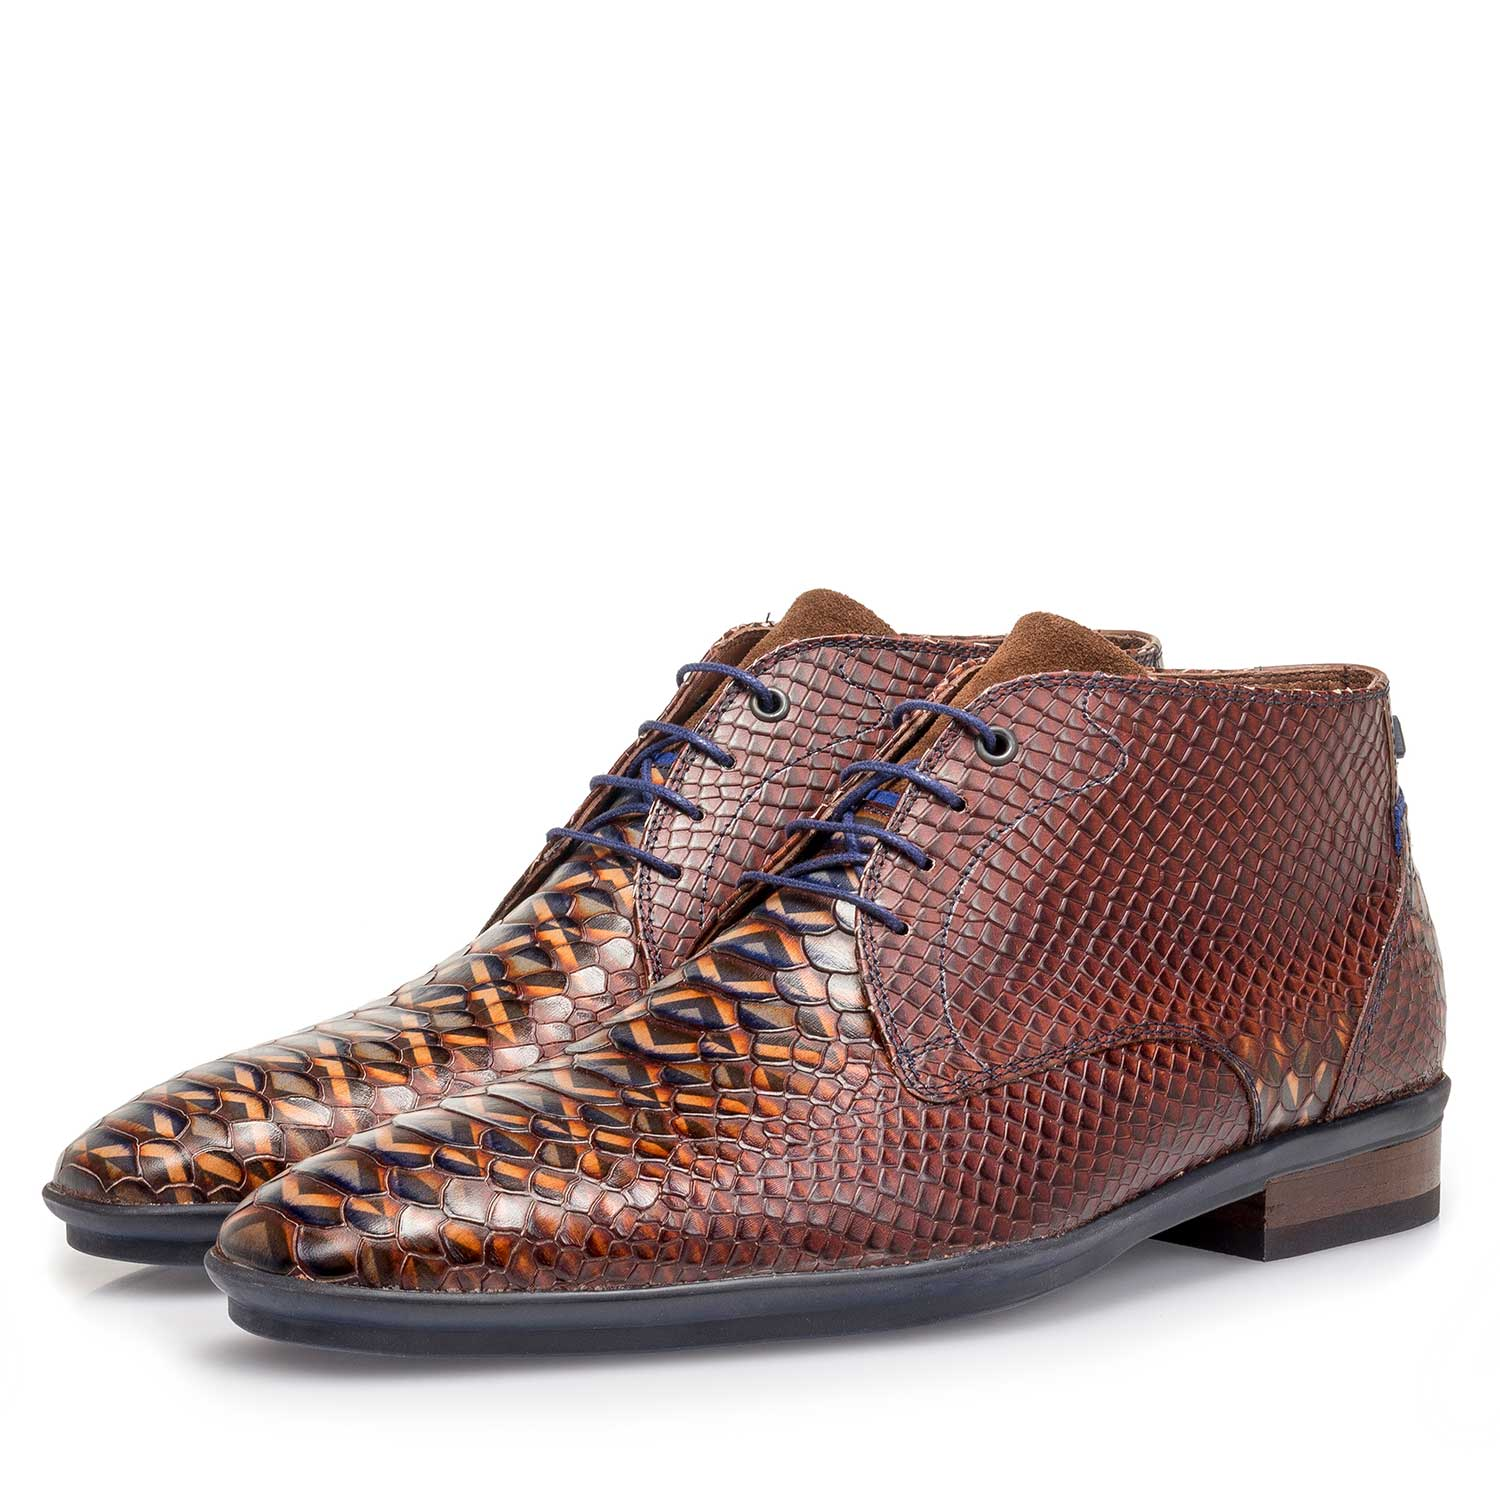 10475/03 - Cognac-coloured calf leather lace shoe with snake print